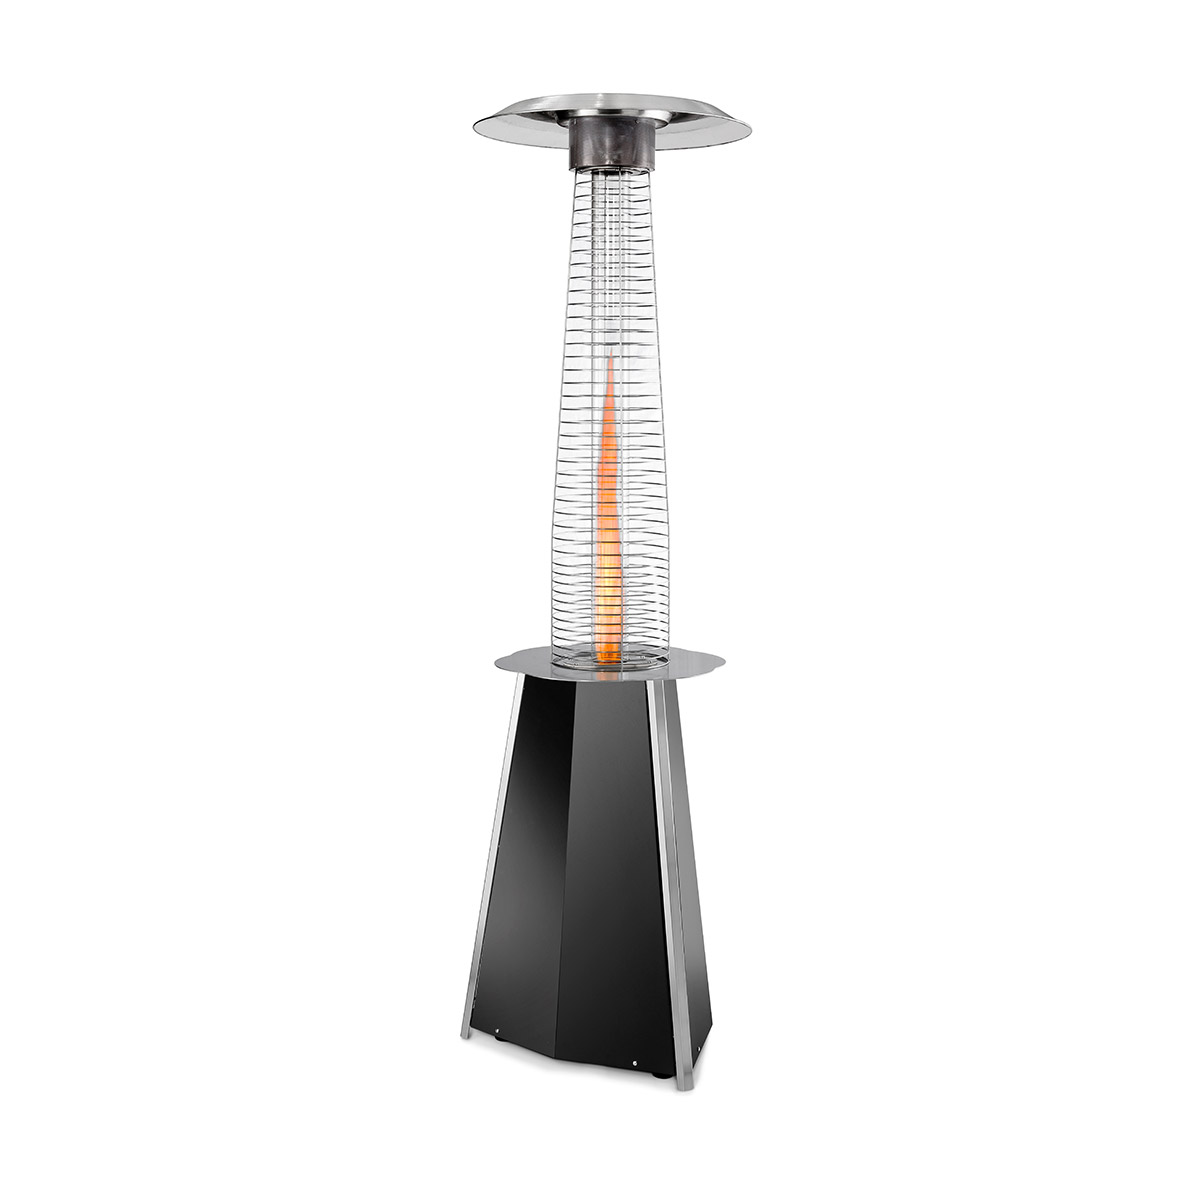 Parasol chauffant - Solflame noir - Outdoor Heating